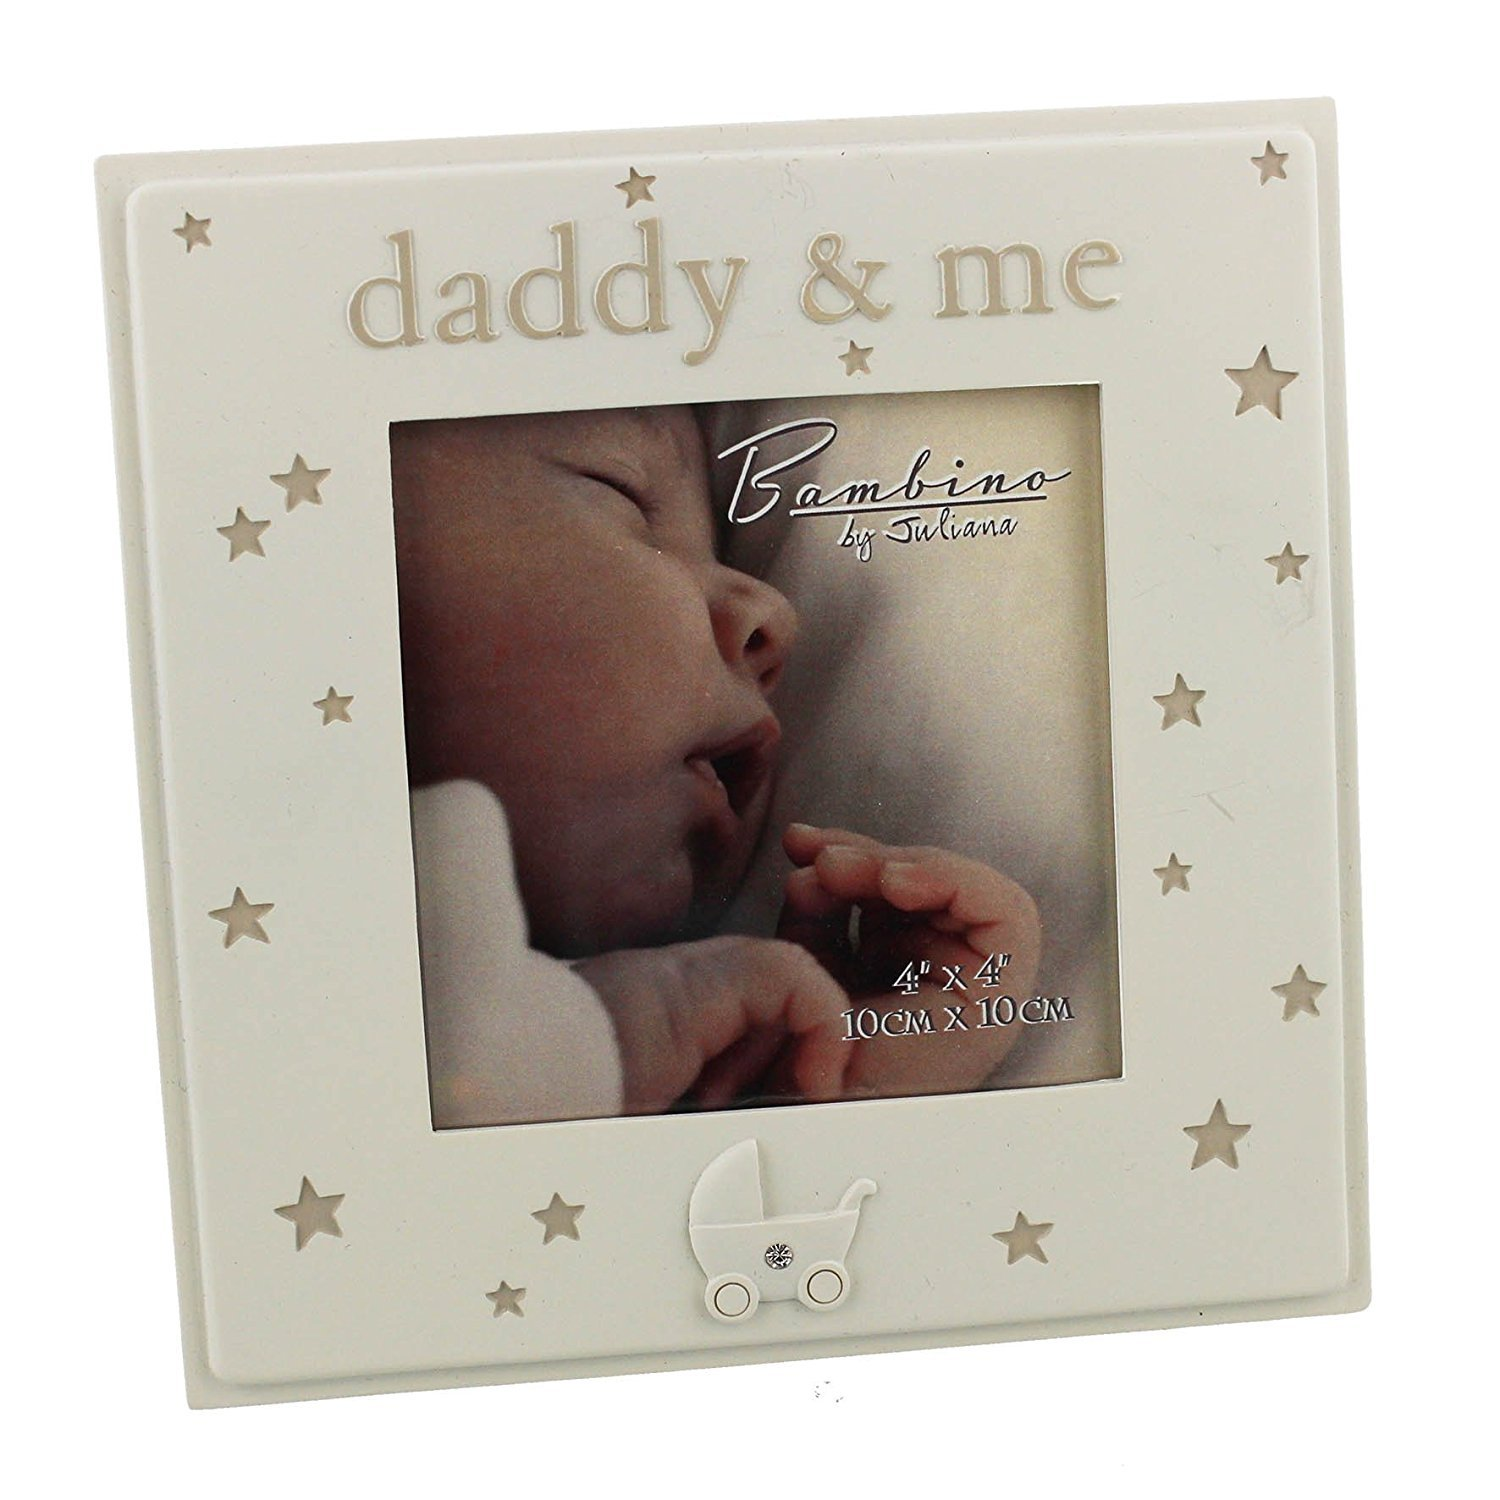 Oaktree Gifts Daddy & Me Resin Photo Frame 4 x 4 WB-CG1371